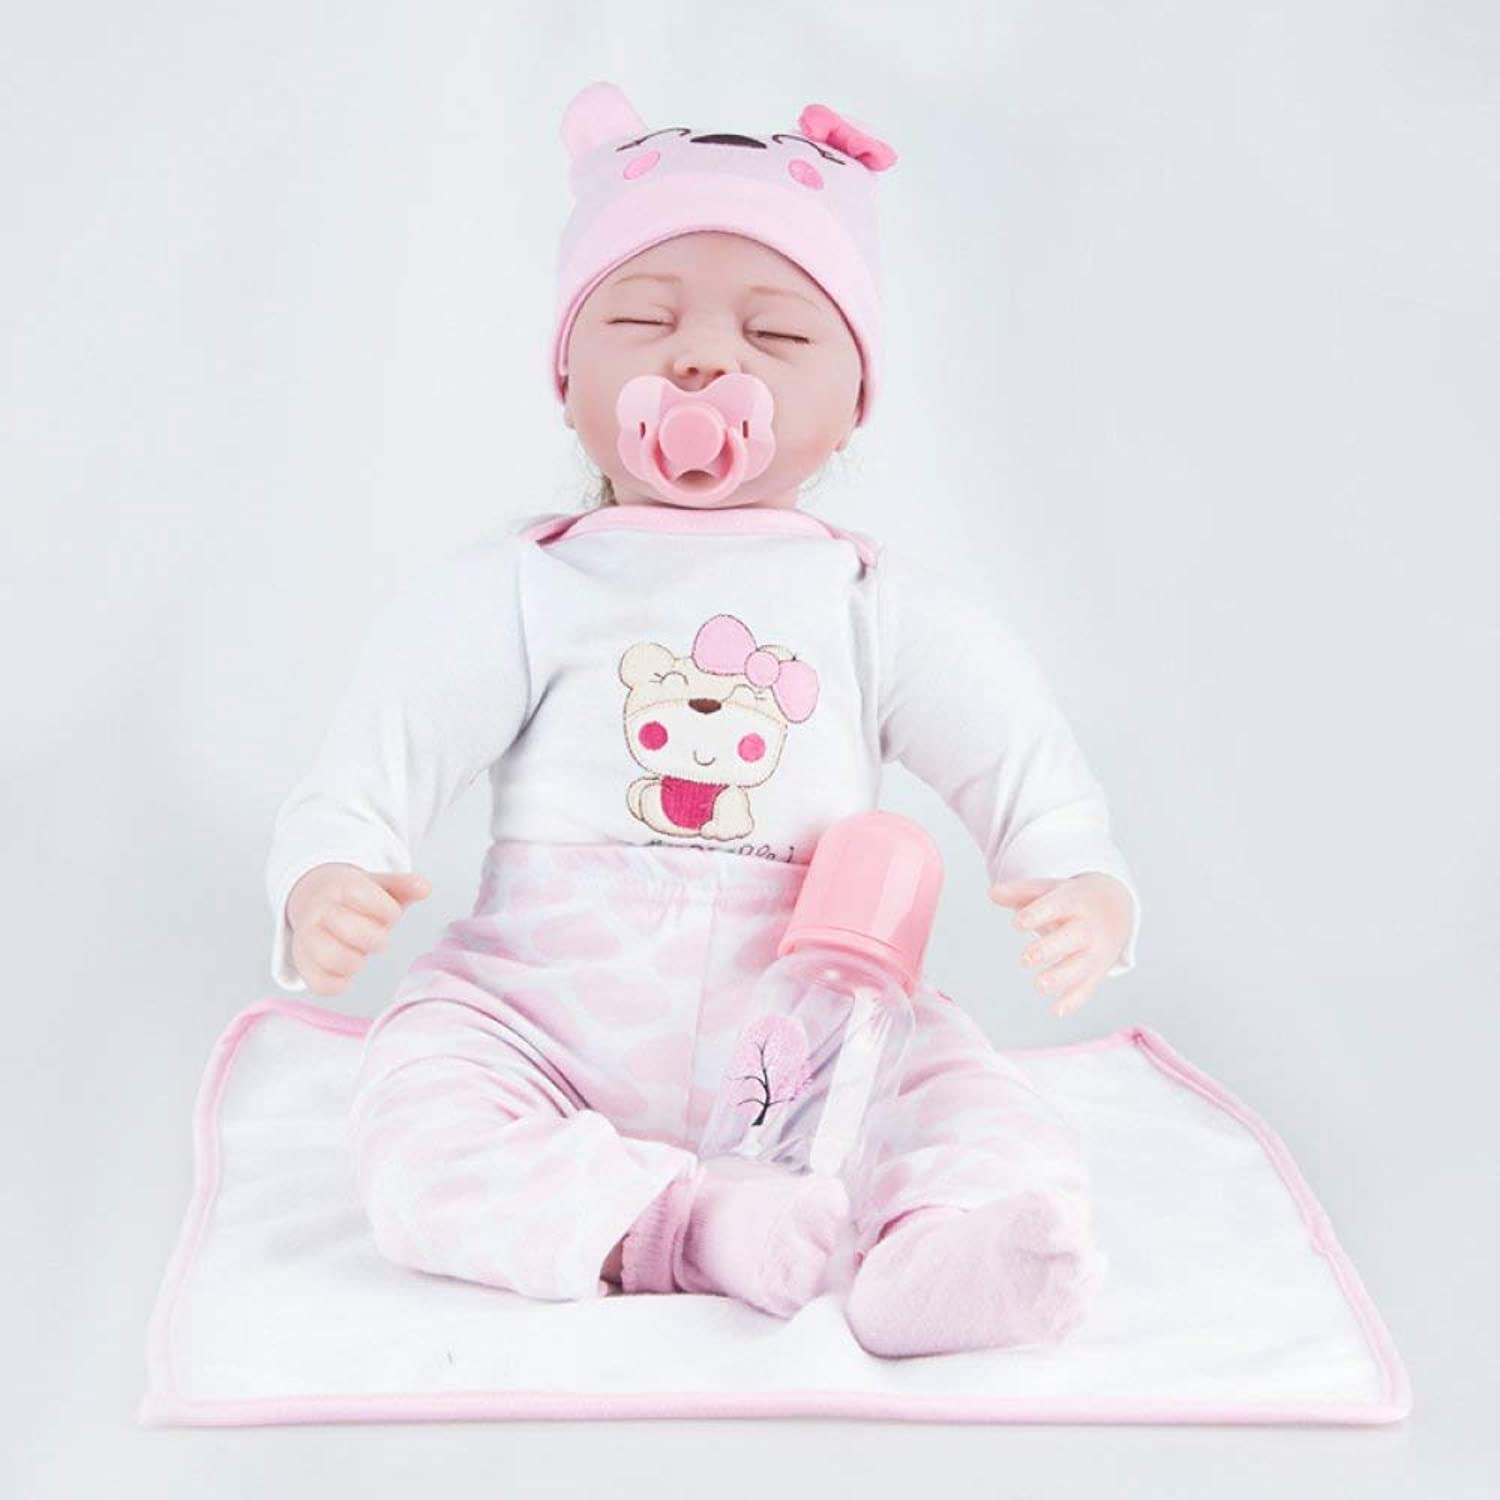 Zicue Instructive Toddler Toy Popular Infant Doll Toy 22 Inchs Reborn Baby Dolls Realistic Handmade Newborn Silicone Baby Doll Lifelike Soft Simulation Eyes Closed Girl Favorite Gift 55cm